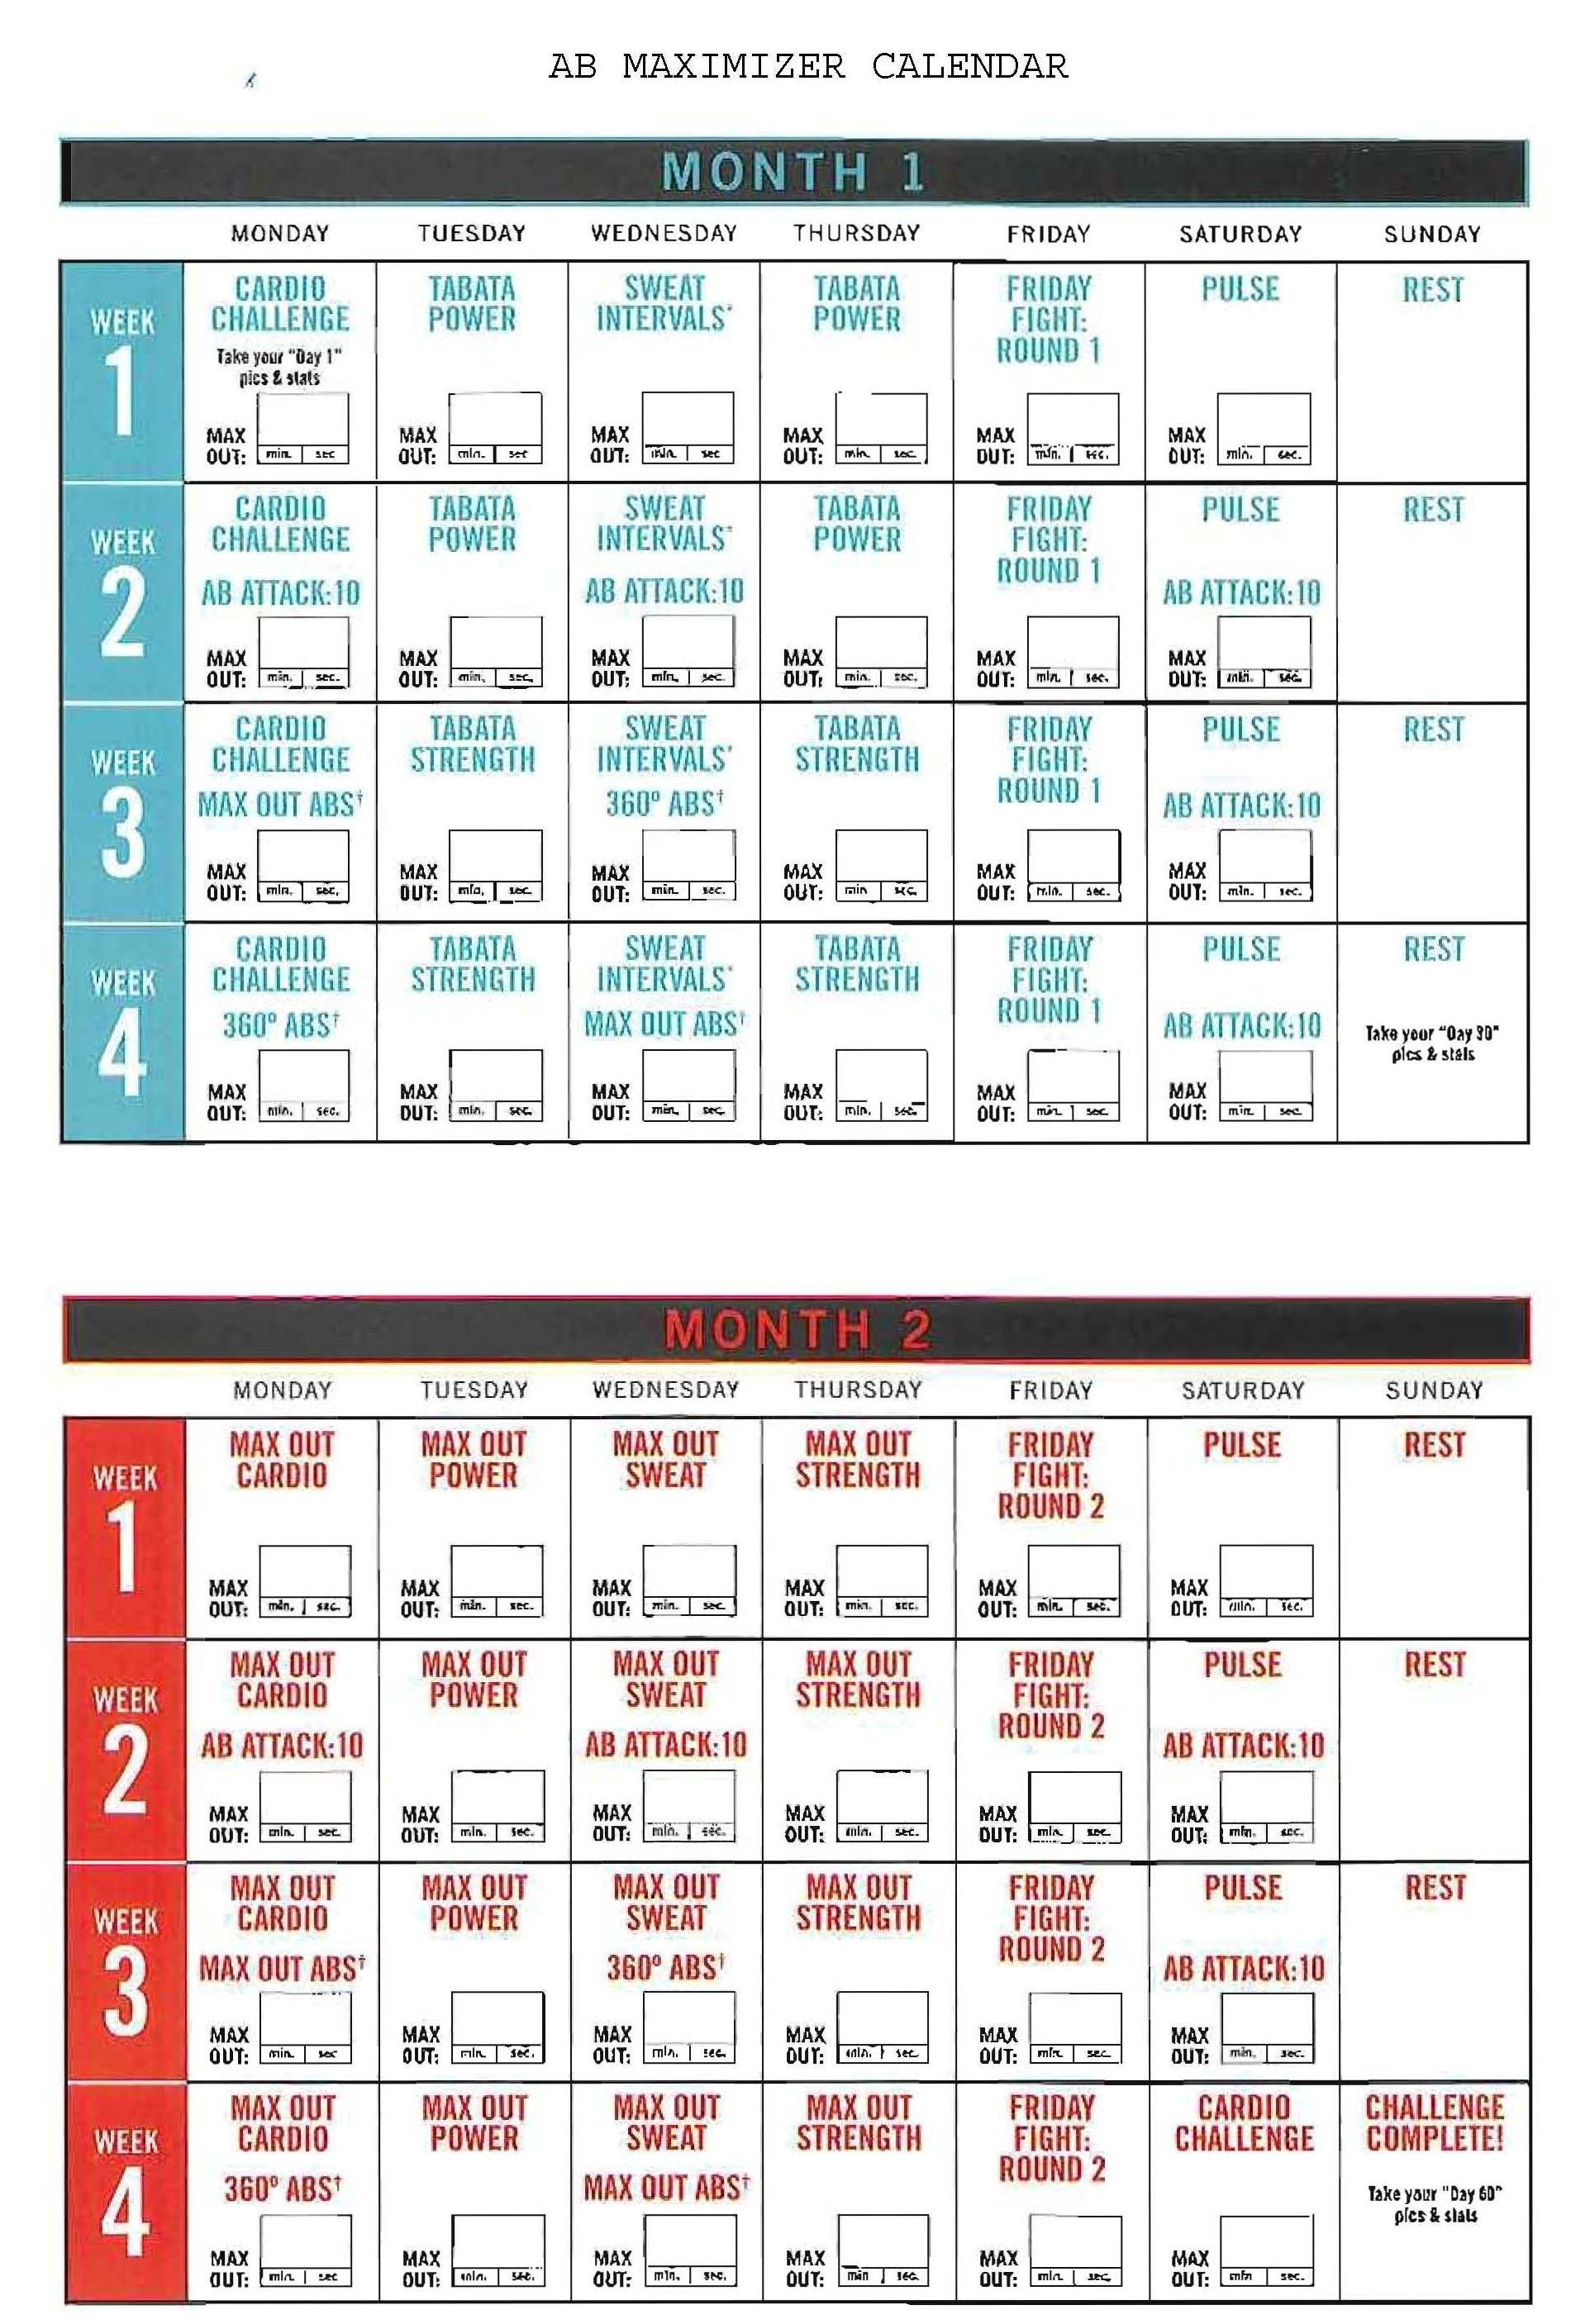 Insanity Ab Maximizer Calendar! Hit Tha Floor  Starting 12 with Max 30 Calendar